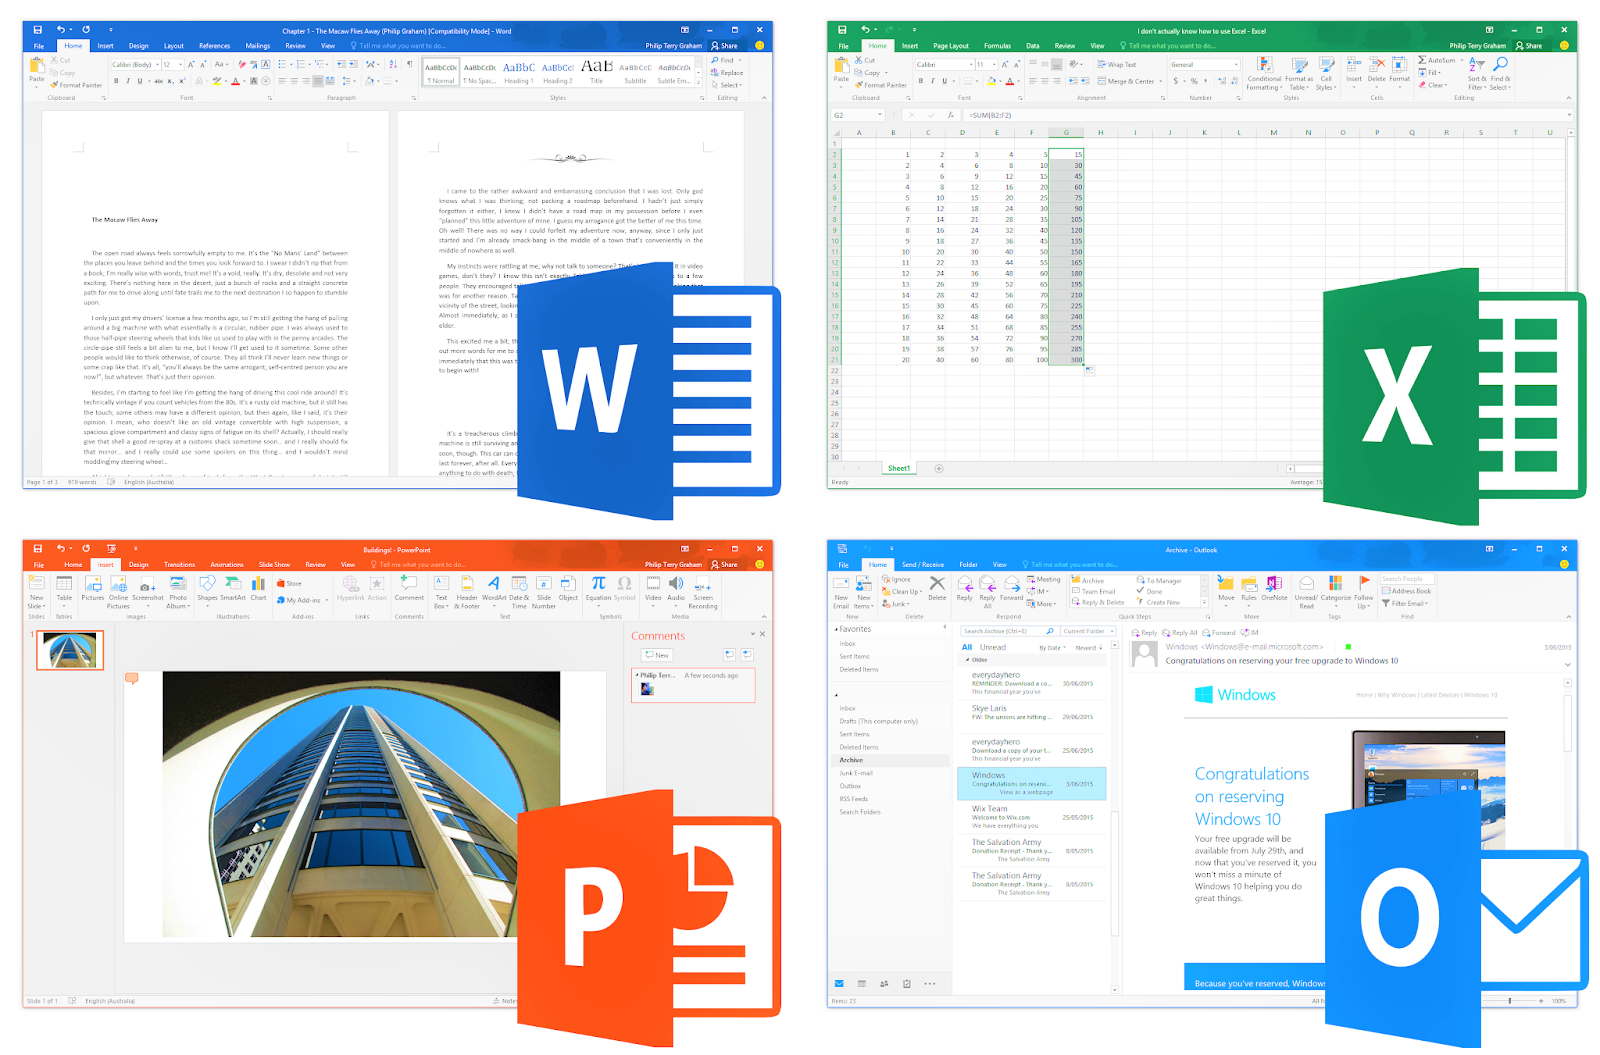 Microsoft Office 2016 Pro Plus VL Full Version Terbaru 2020 Working